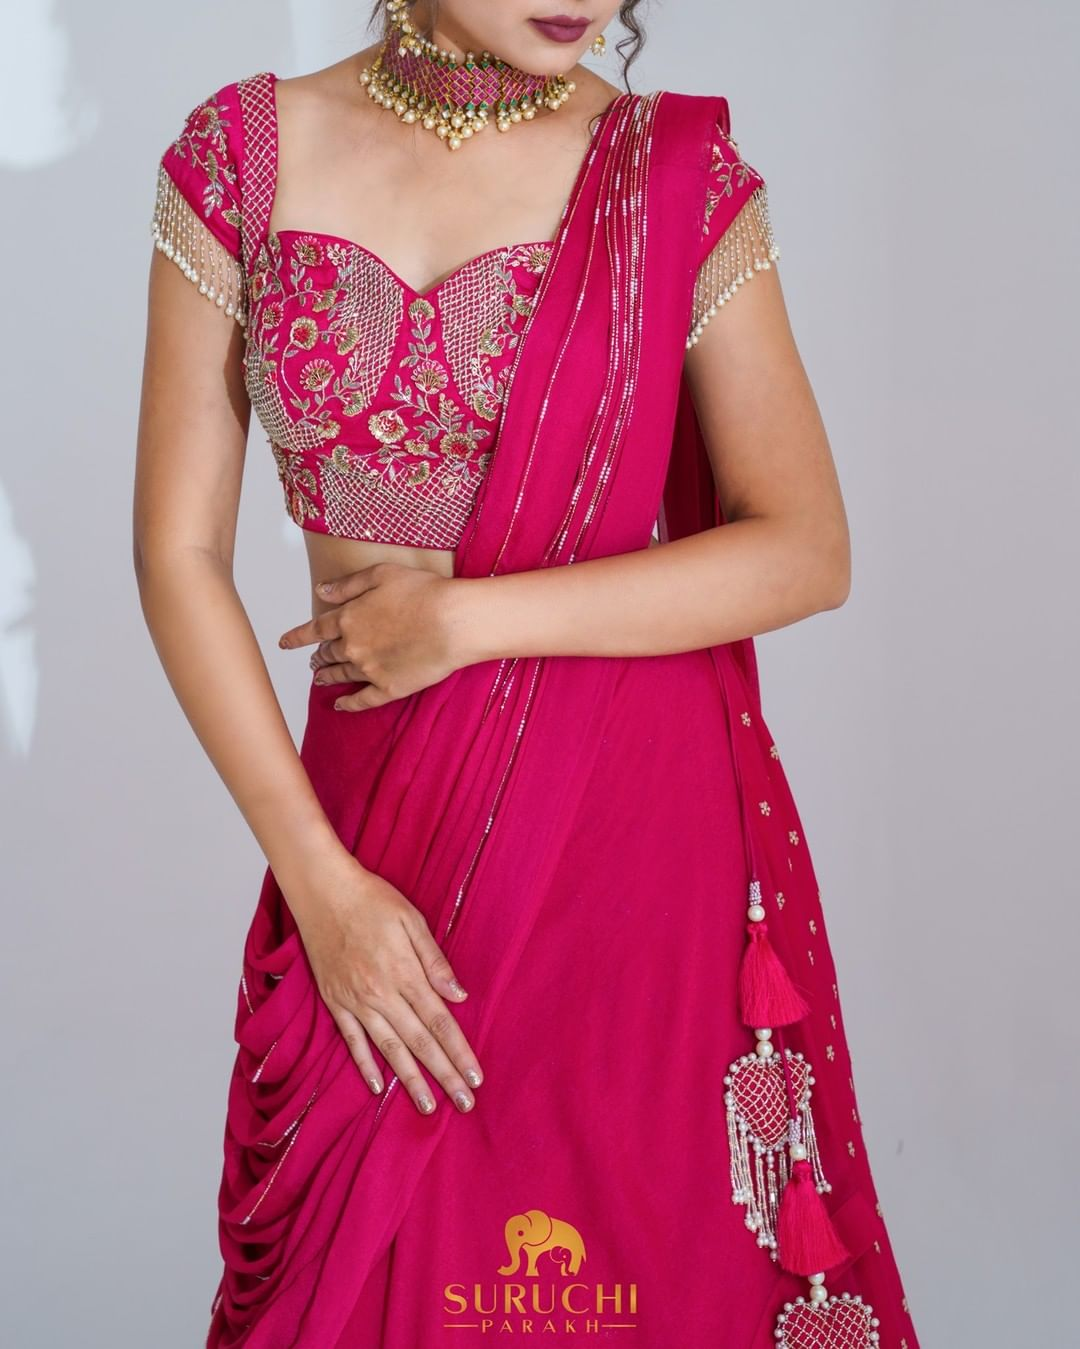 Rani Pink monochromatic lehenga set with golden work details feels like royalty to us. Get your hands on this and try it yourself. 2021-10-07